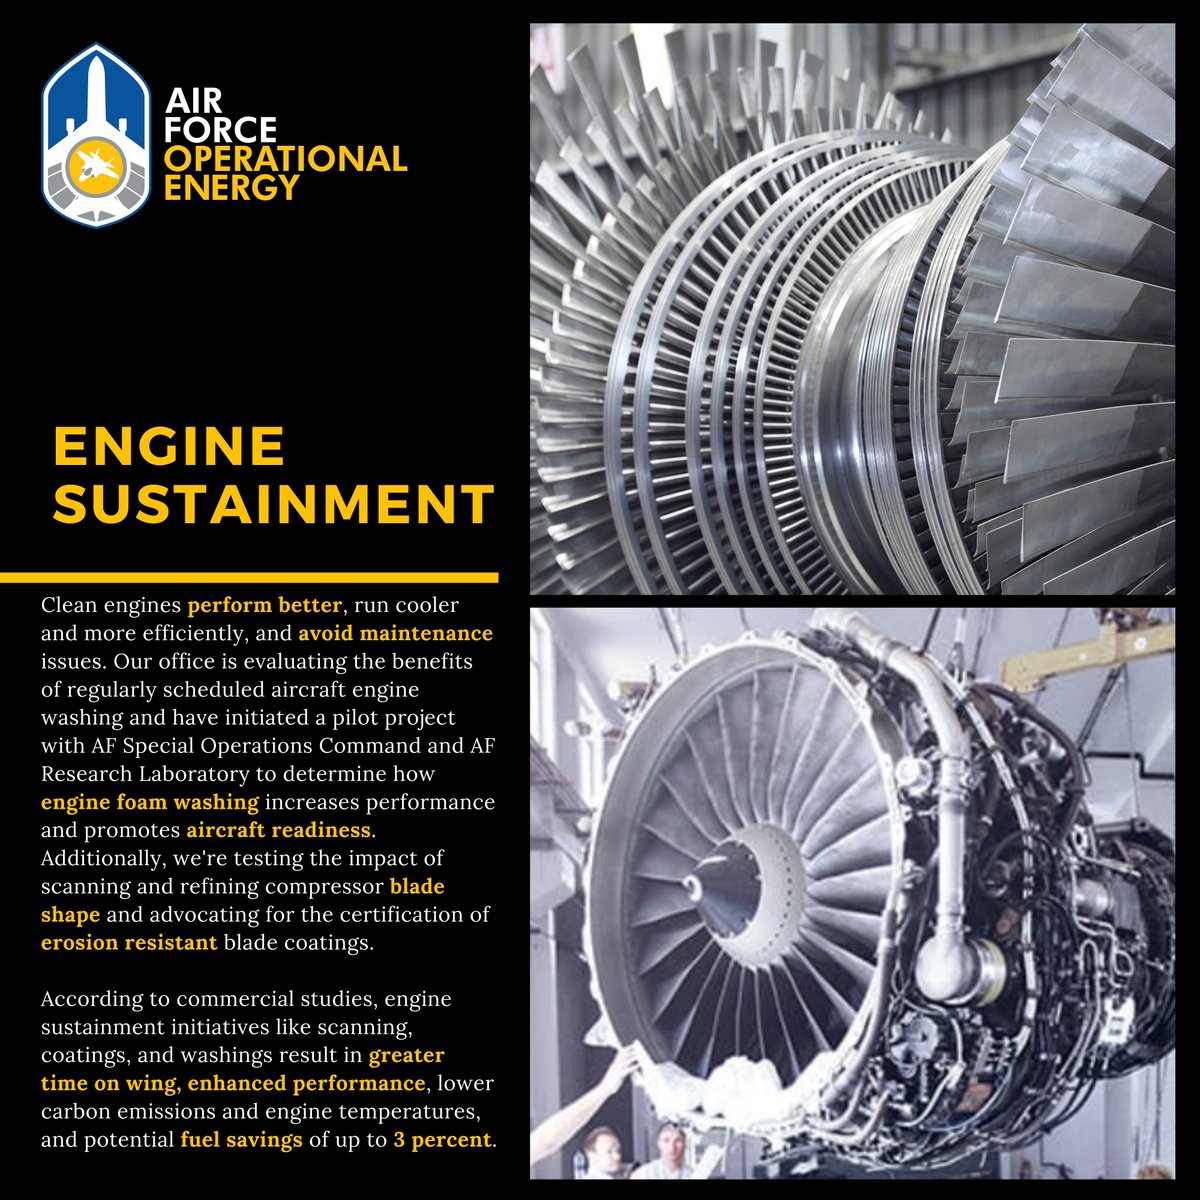 DYK our engine sustainment initiatives can reduce fuel use by 2-3% AND increase engine performance? #EnergyAbleMissionCapable #EnergyAwarenessMonth 👉 go.usa.gov/xGGjB